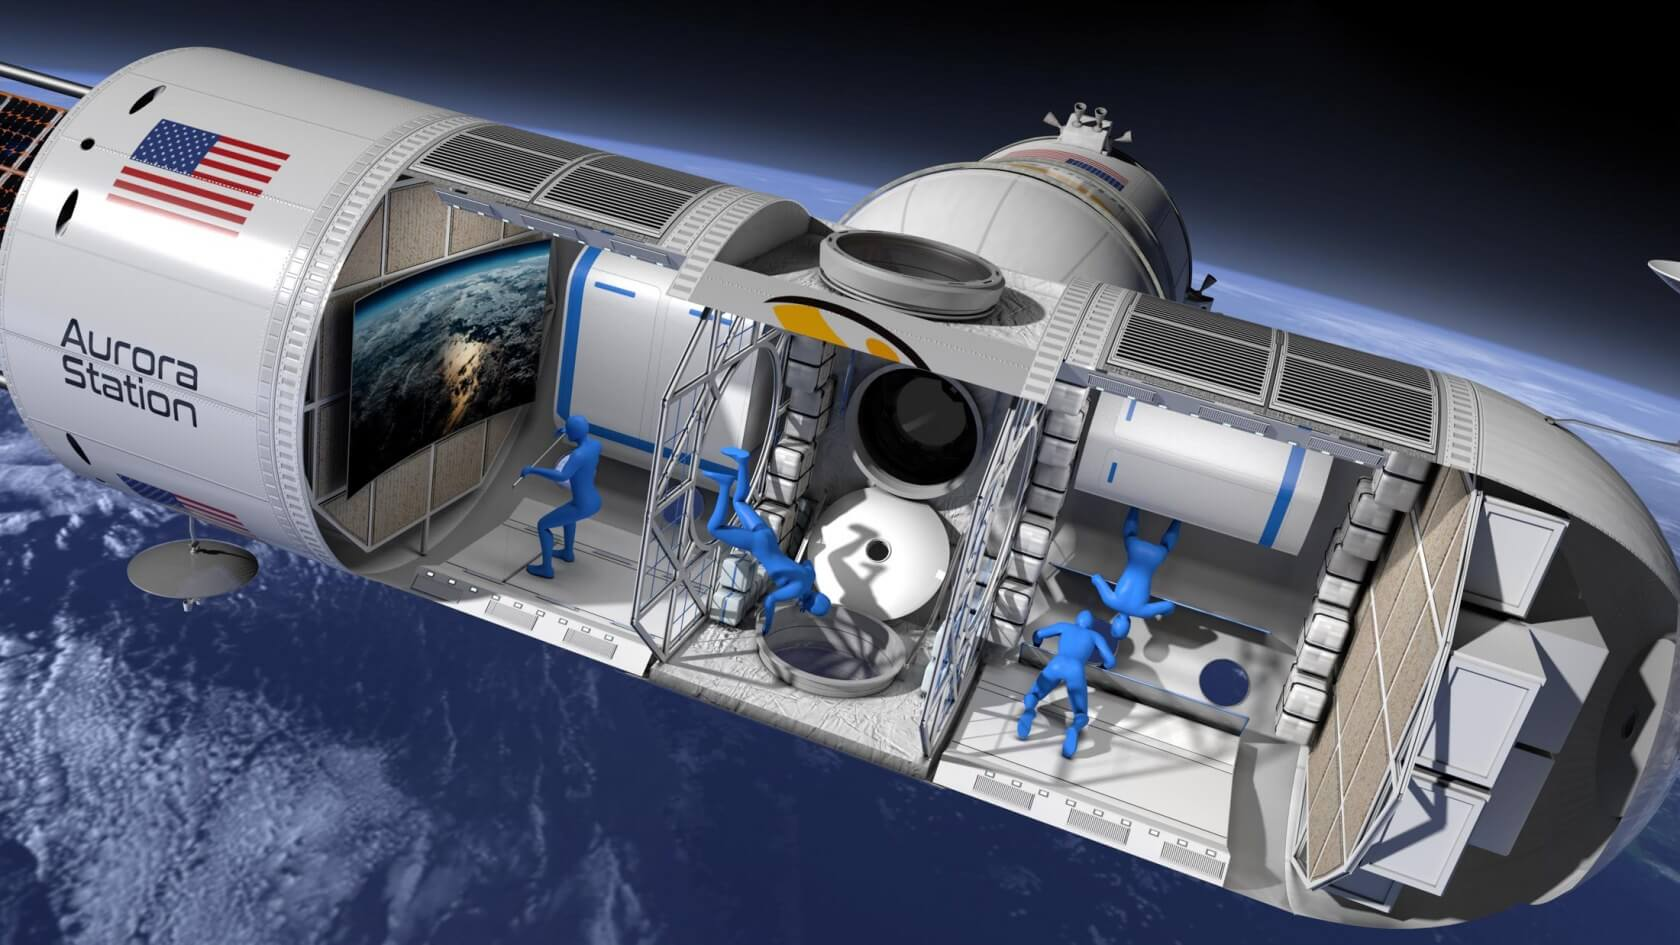 First luxury space hotel set for launch in 2021, trips will cost $10 million